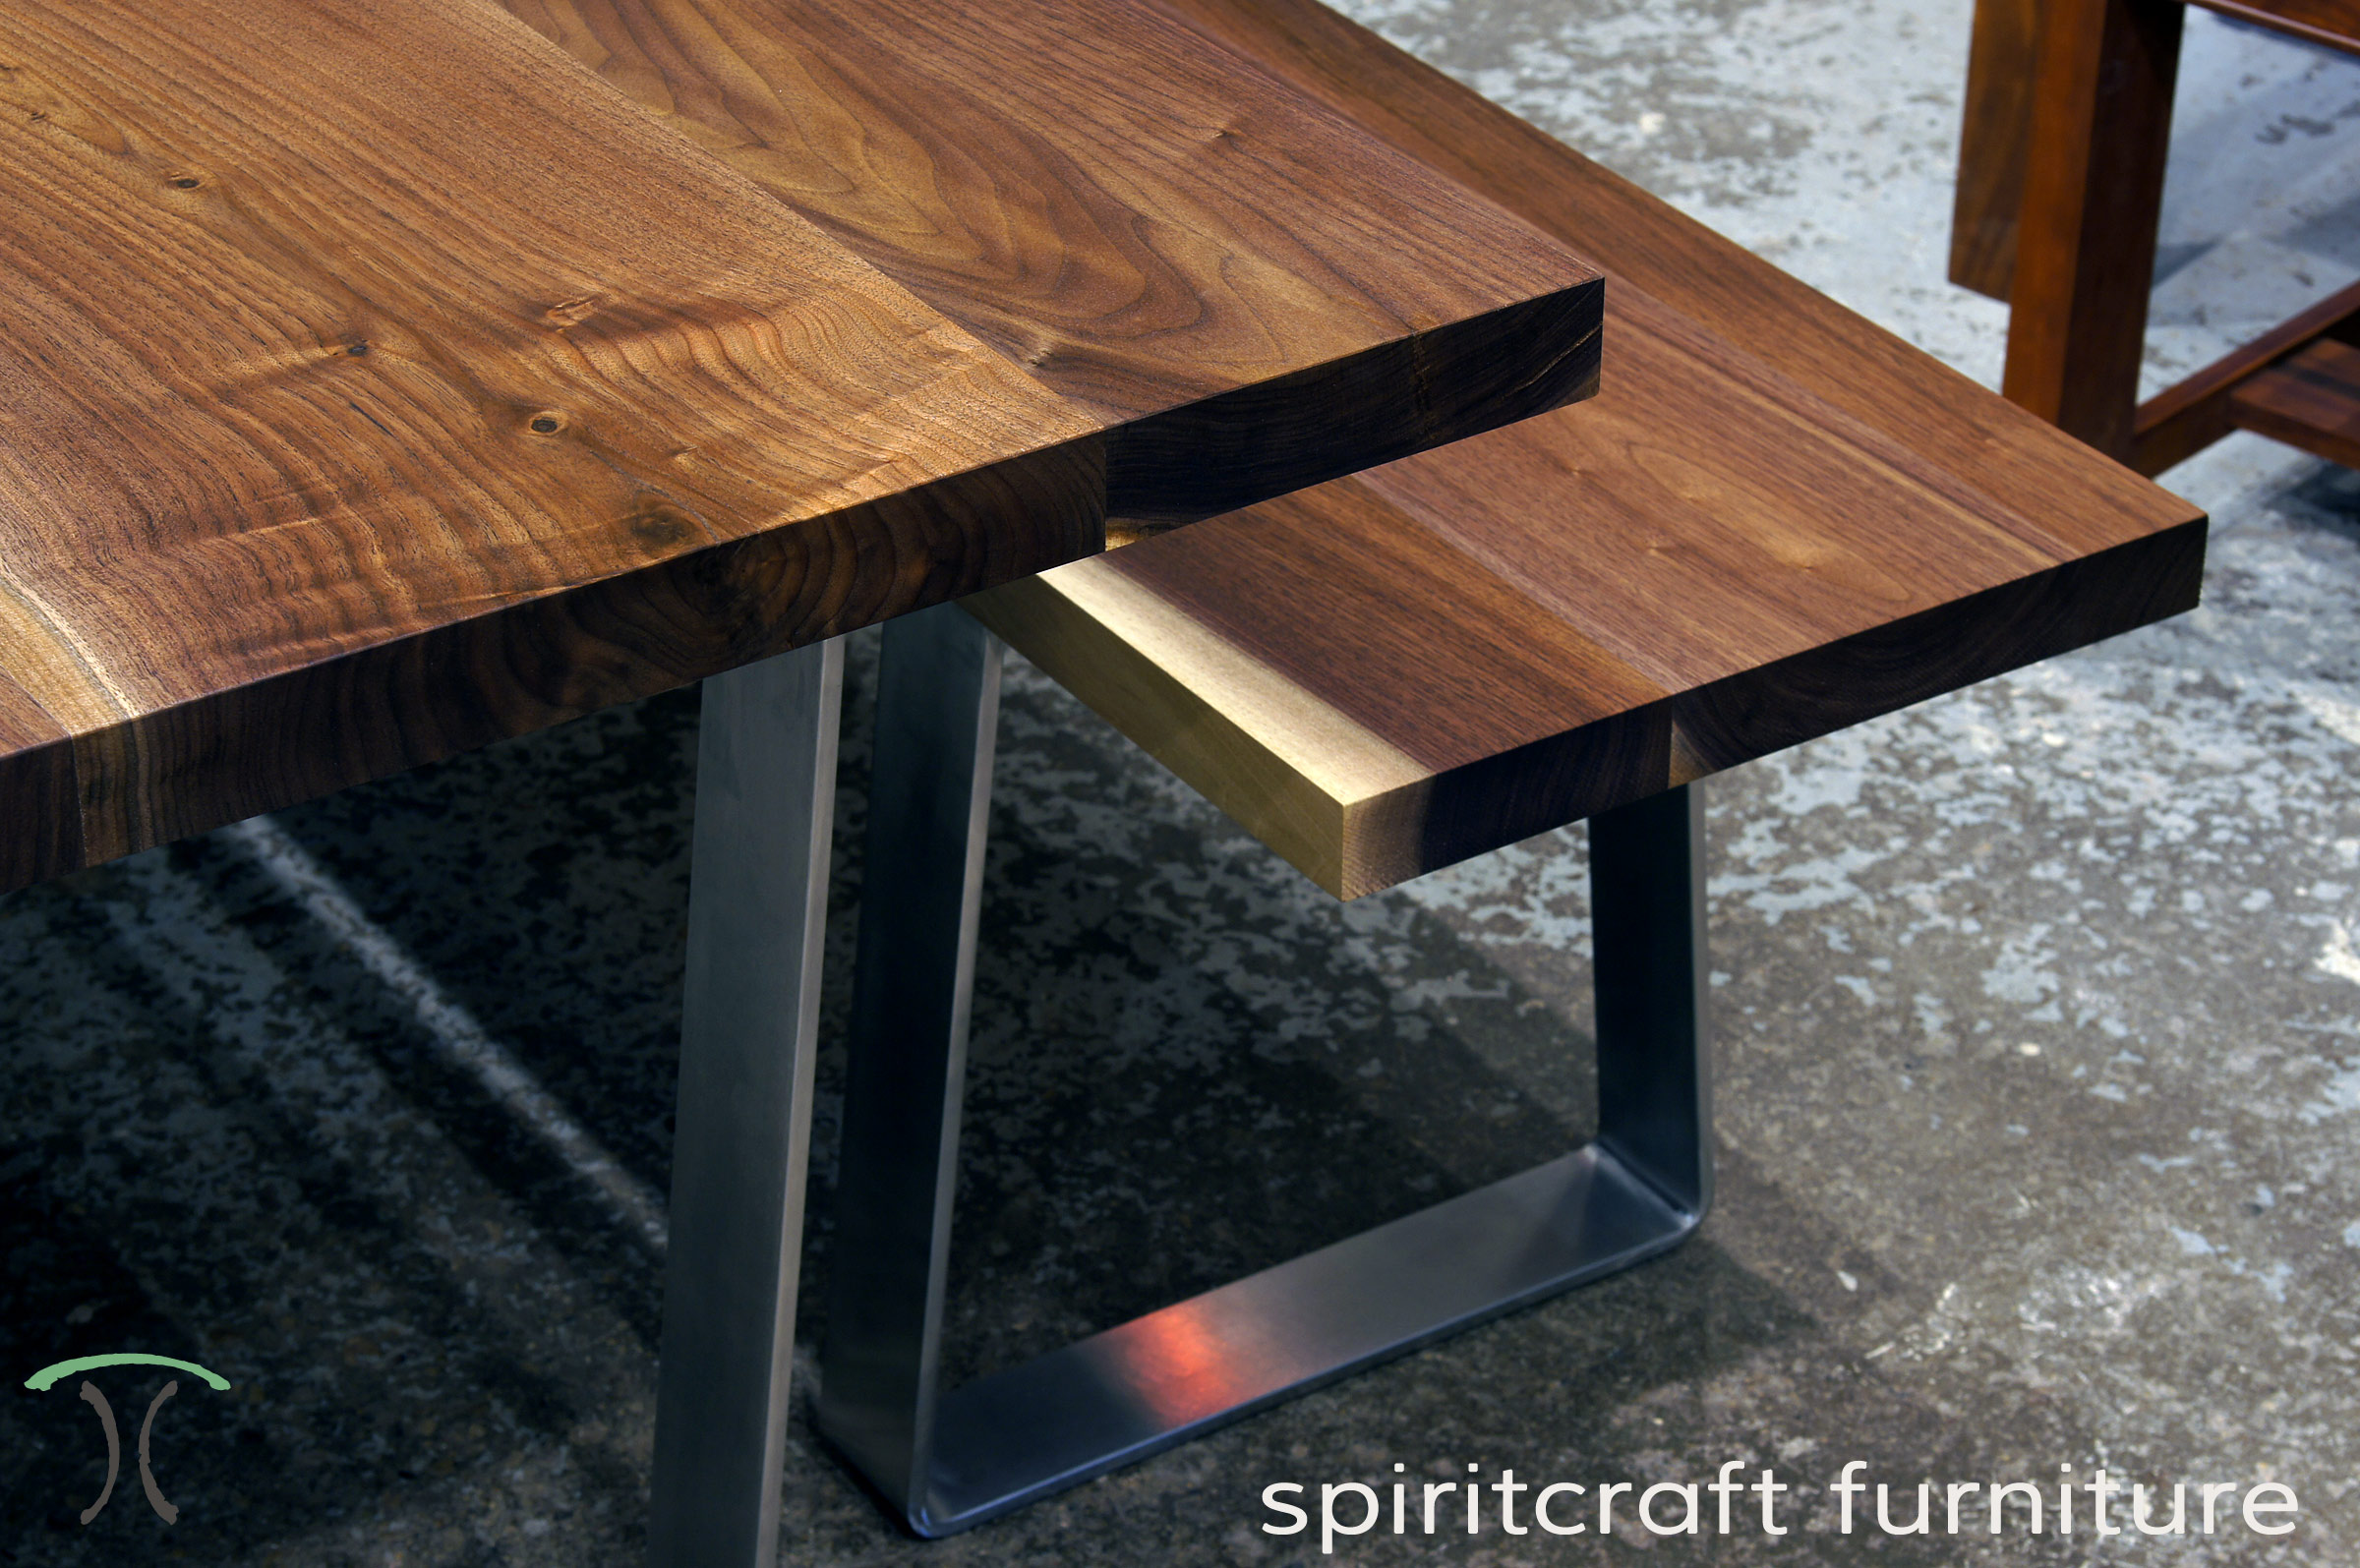 Solid Hardwood Dining Table And Bench From Slabs Of Kiln Dried Black Walnut  With Mid Century